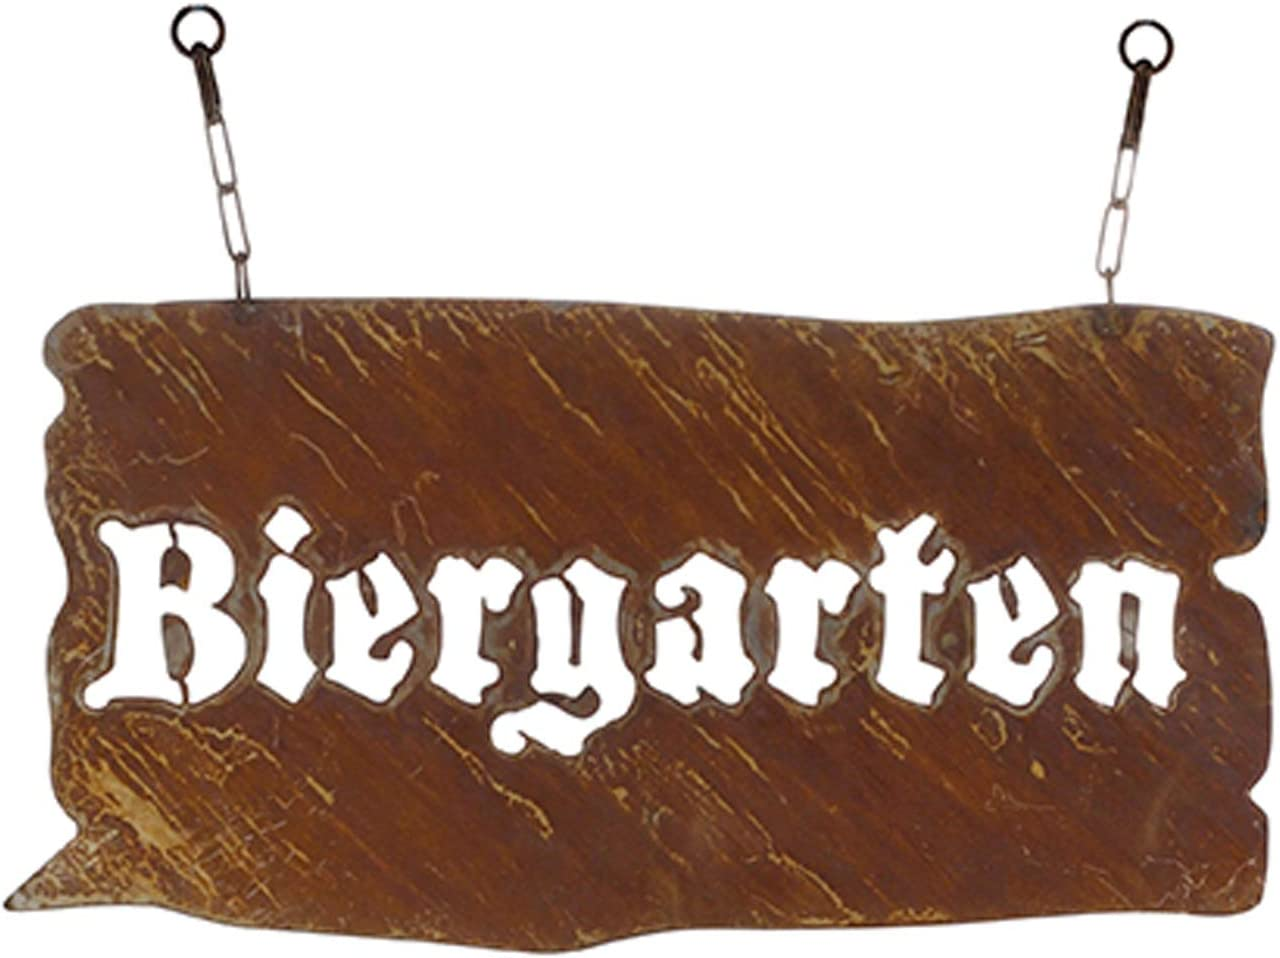 Easter Shell Collector S Shop Rusted Garden Metal Sign For Hanging Beer Garden Ulky And Original For Hanging On Chains The Sign For The Garden Garten